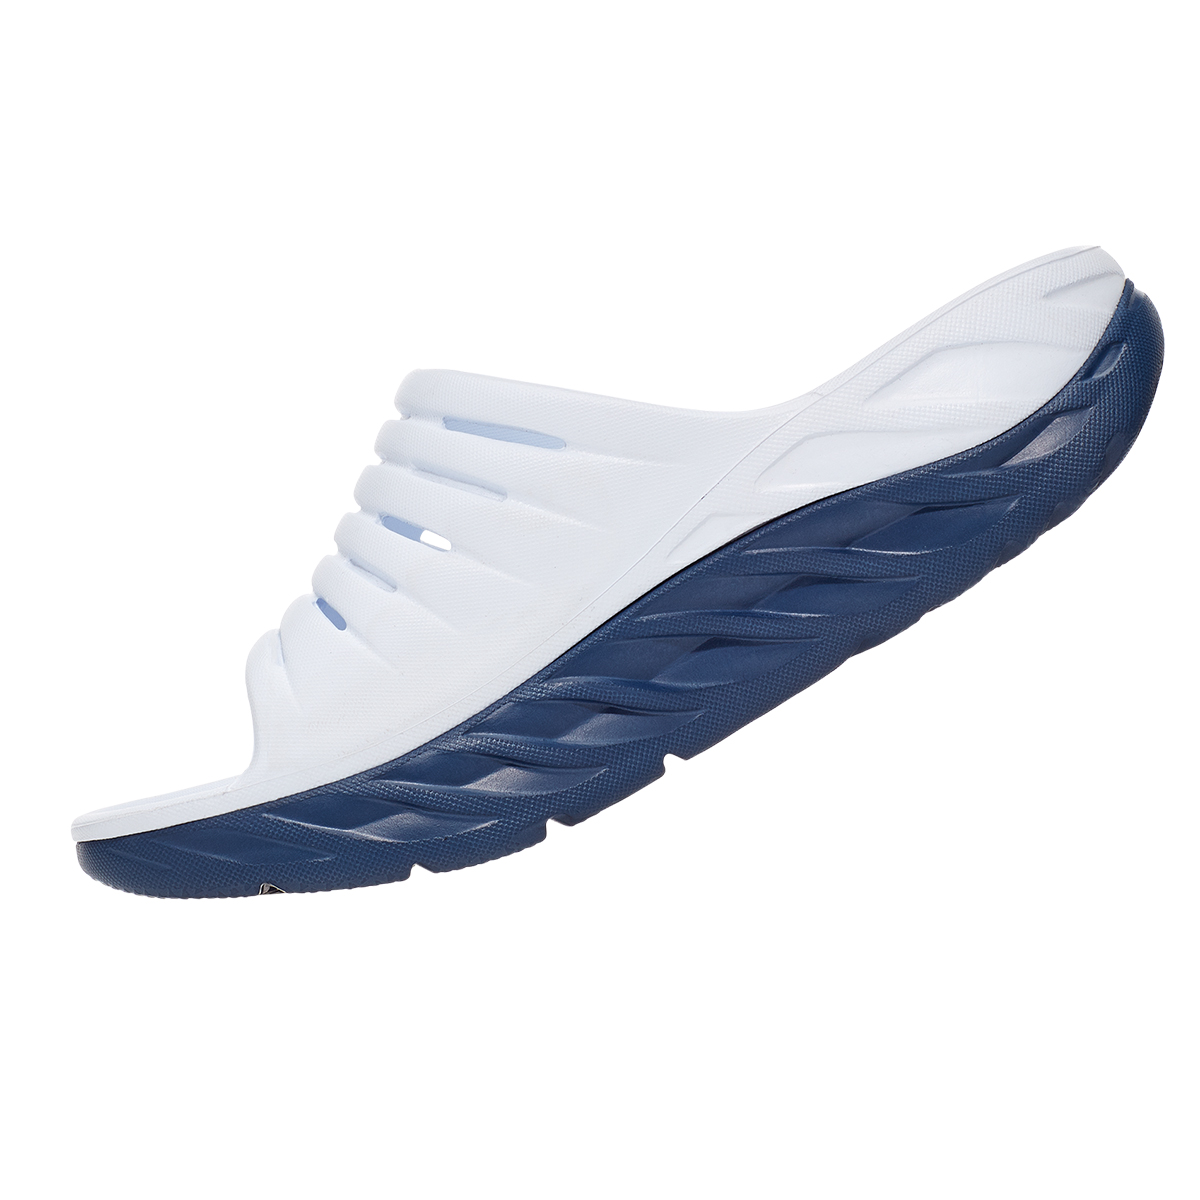 Women's Hoka One One Ora Recovery Slide - Color: White/Vintage - Size: 5 - Width: Regular, White/Vintage, large, image 3